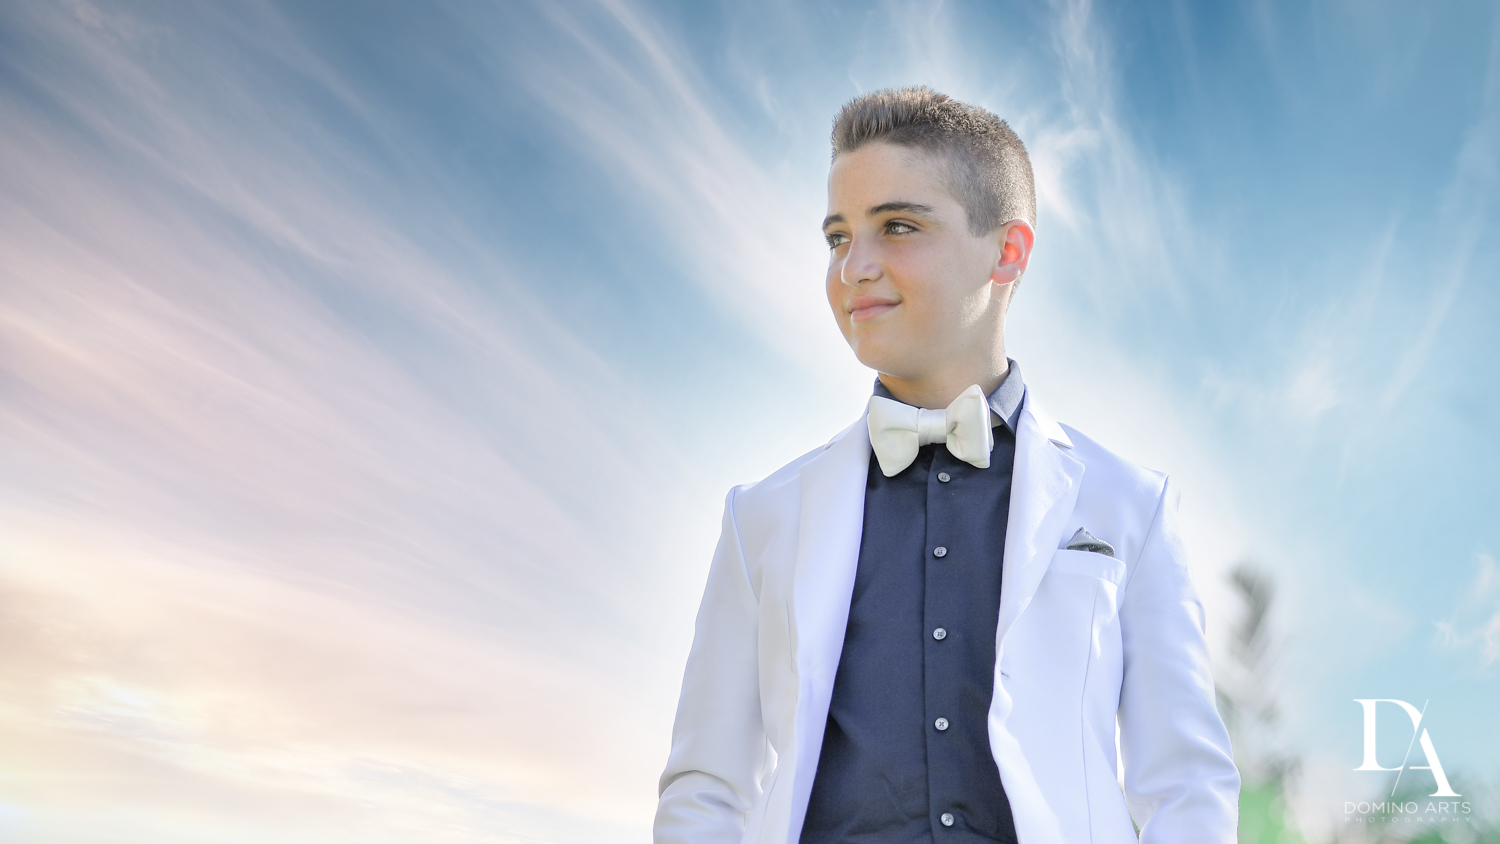 Portraits at Luxury B'Nai Mitzvah at Woodfield Country Club by Domino Arts Photography